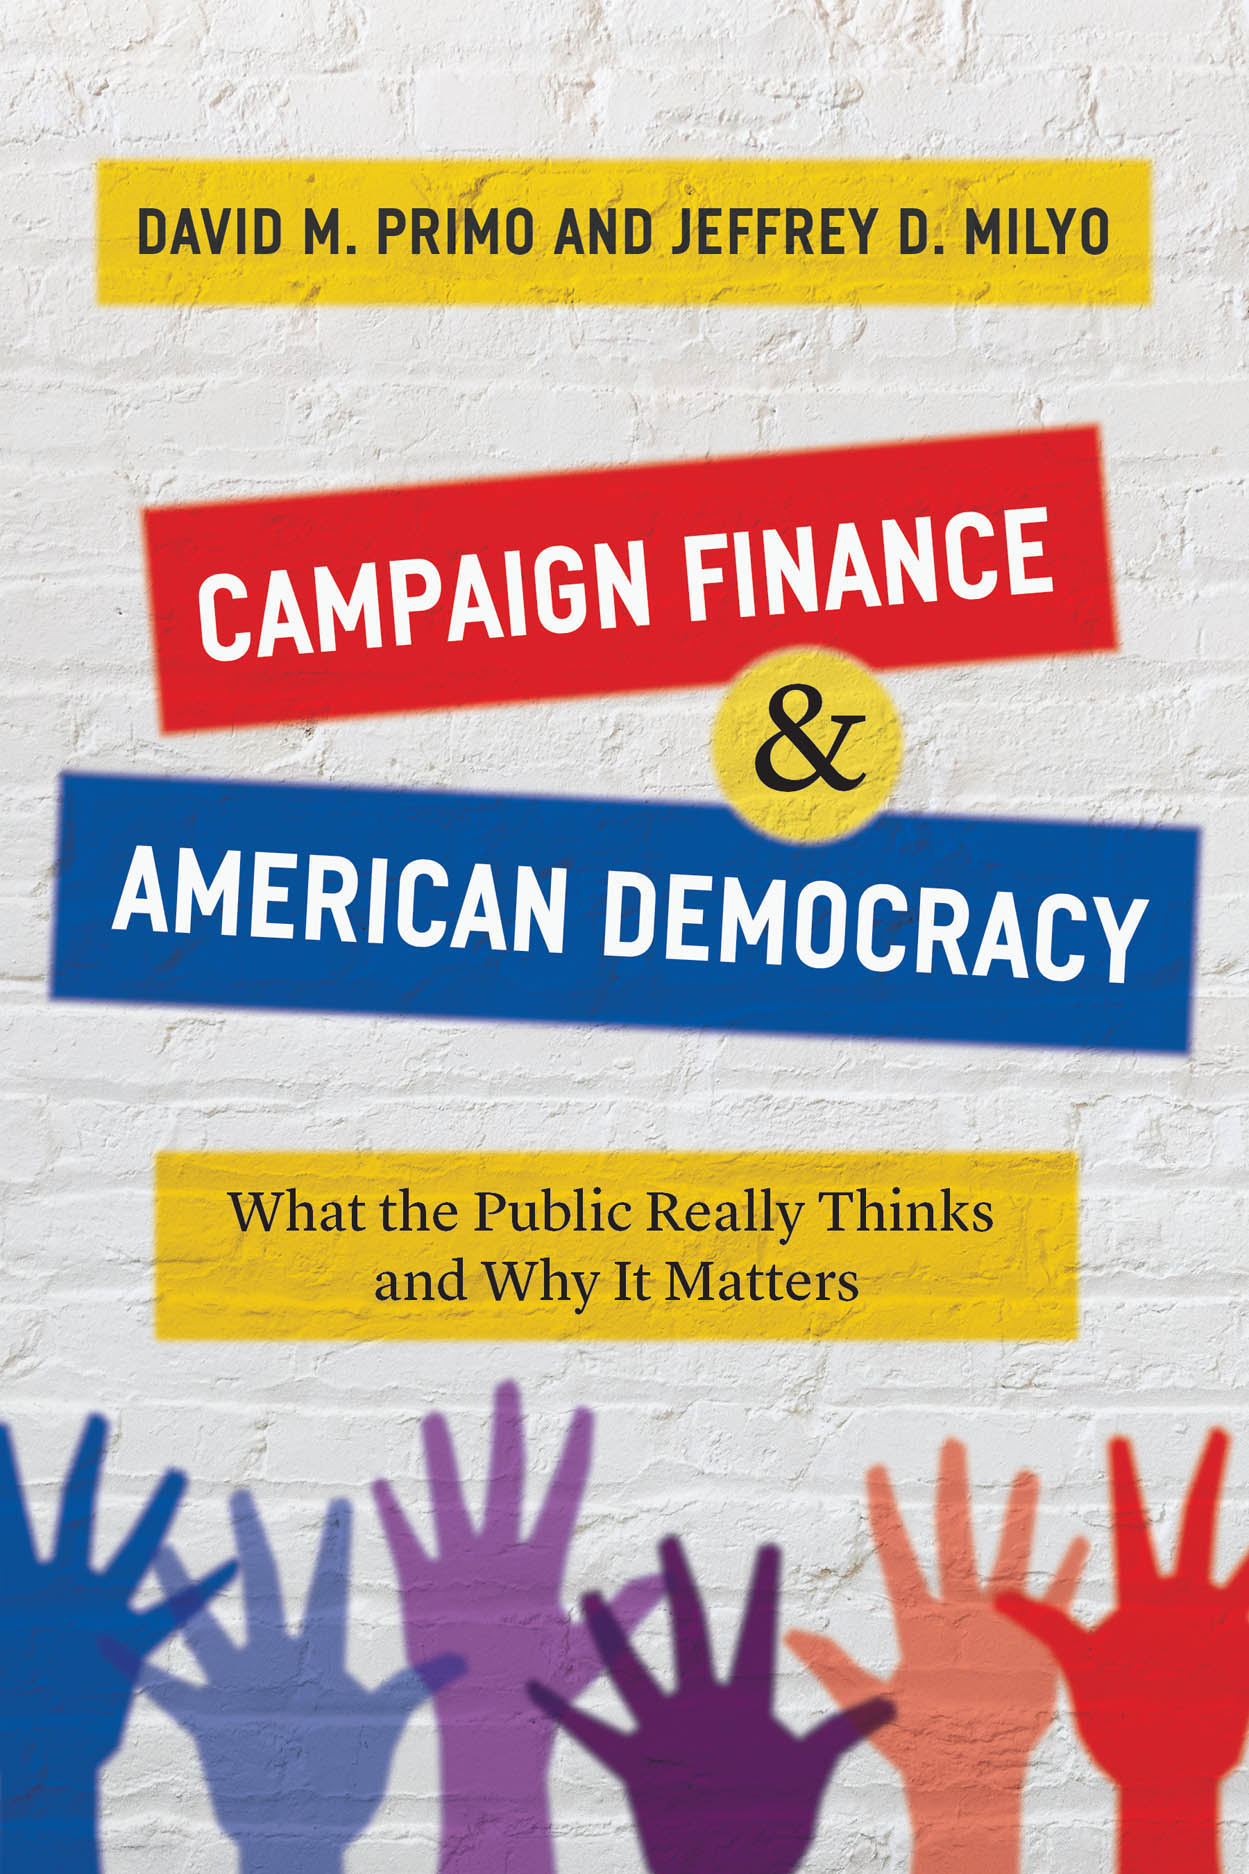 Campaign Finance and American Democracy: What the Public Really Thinks and Why It Matters